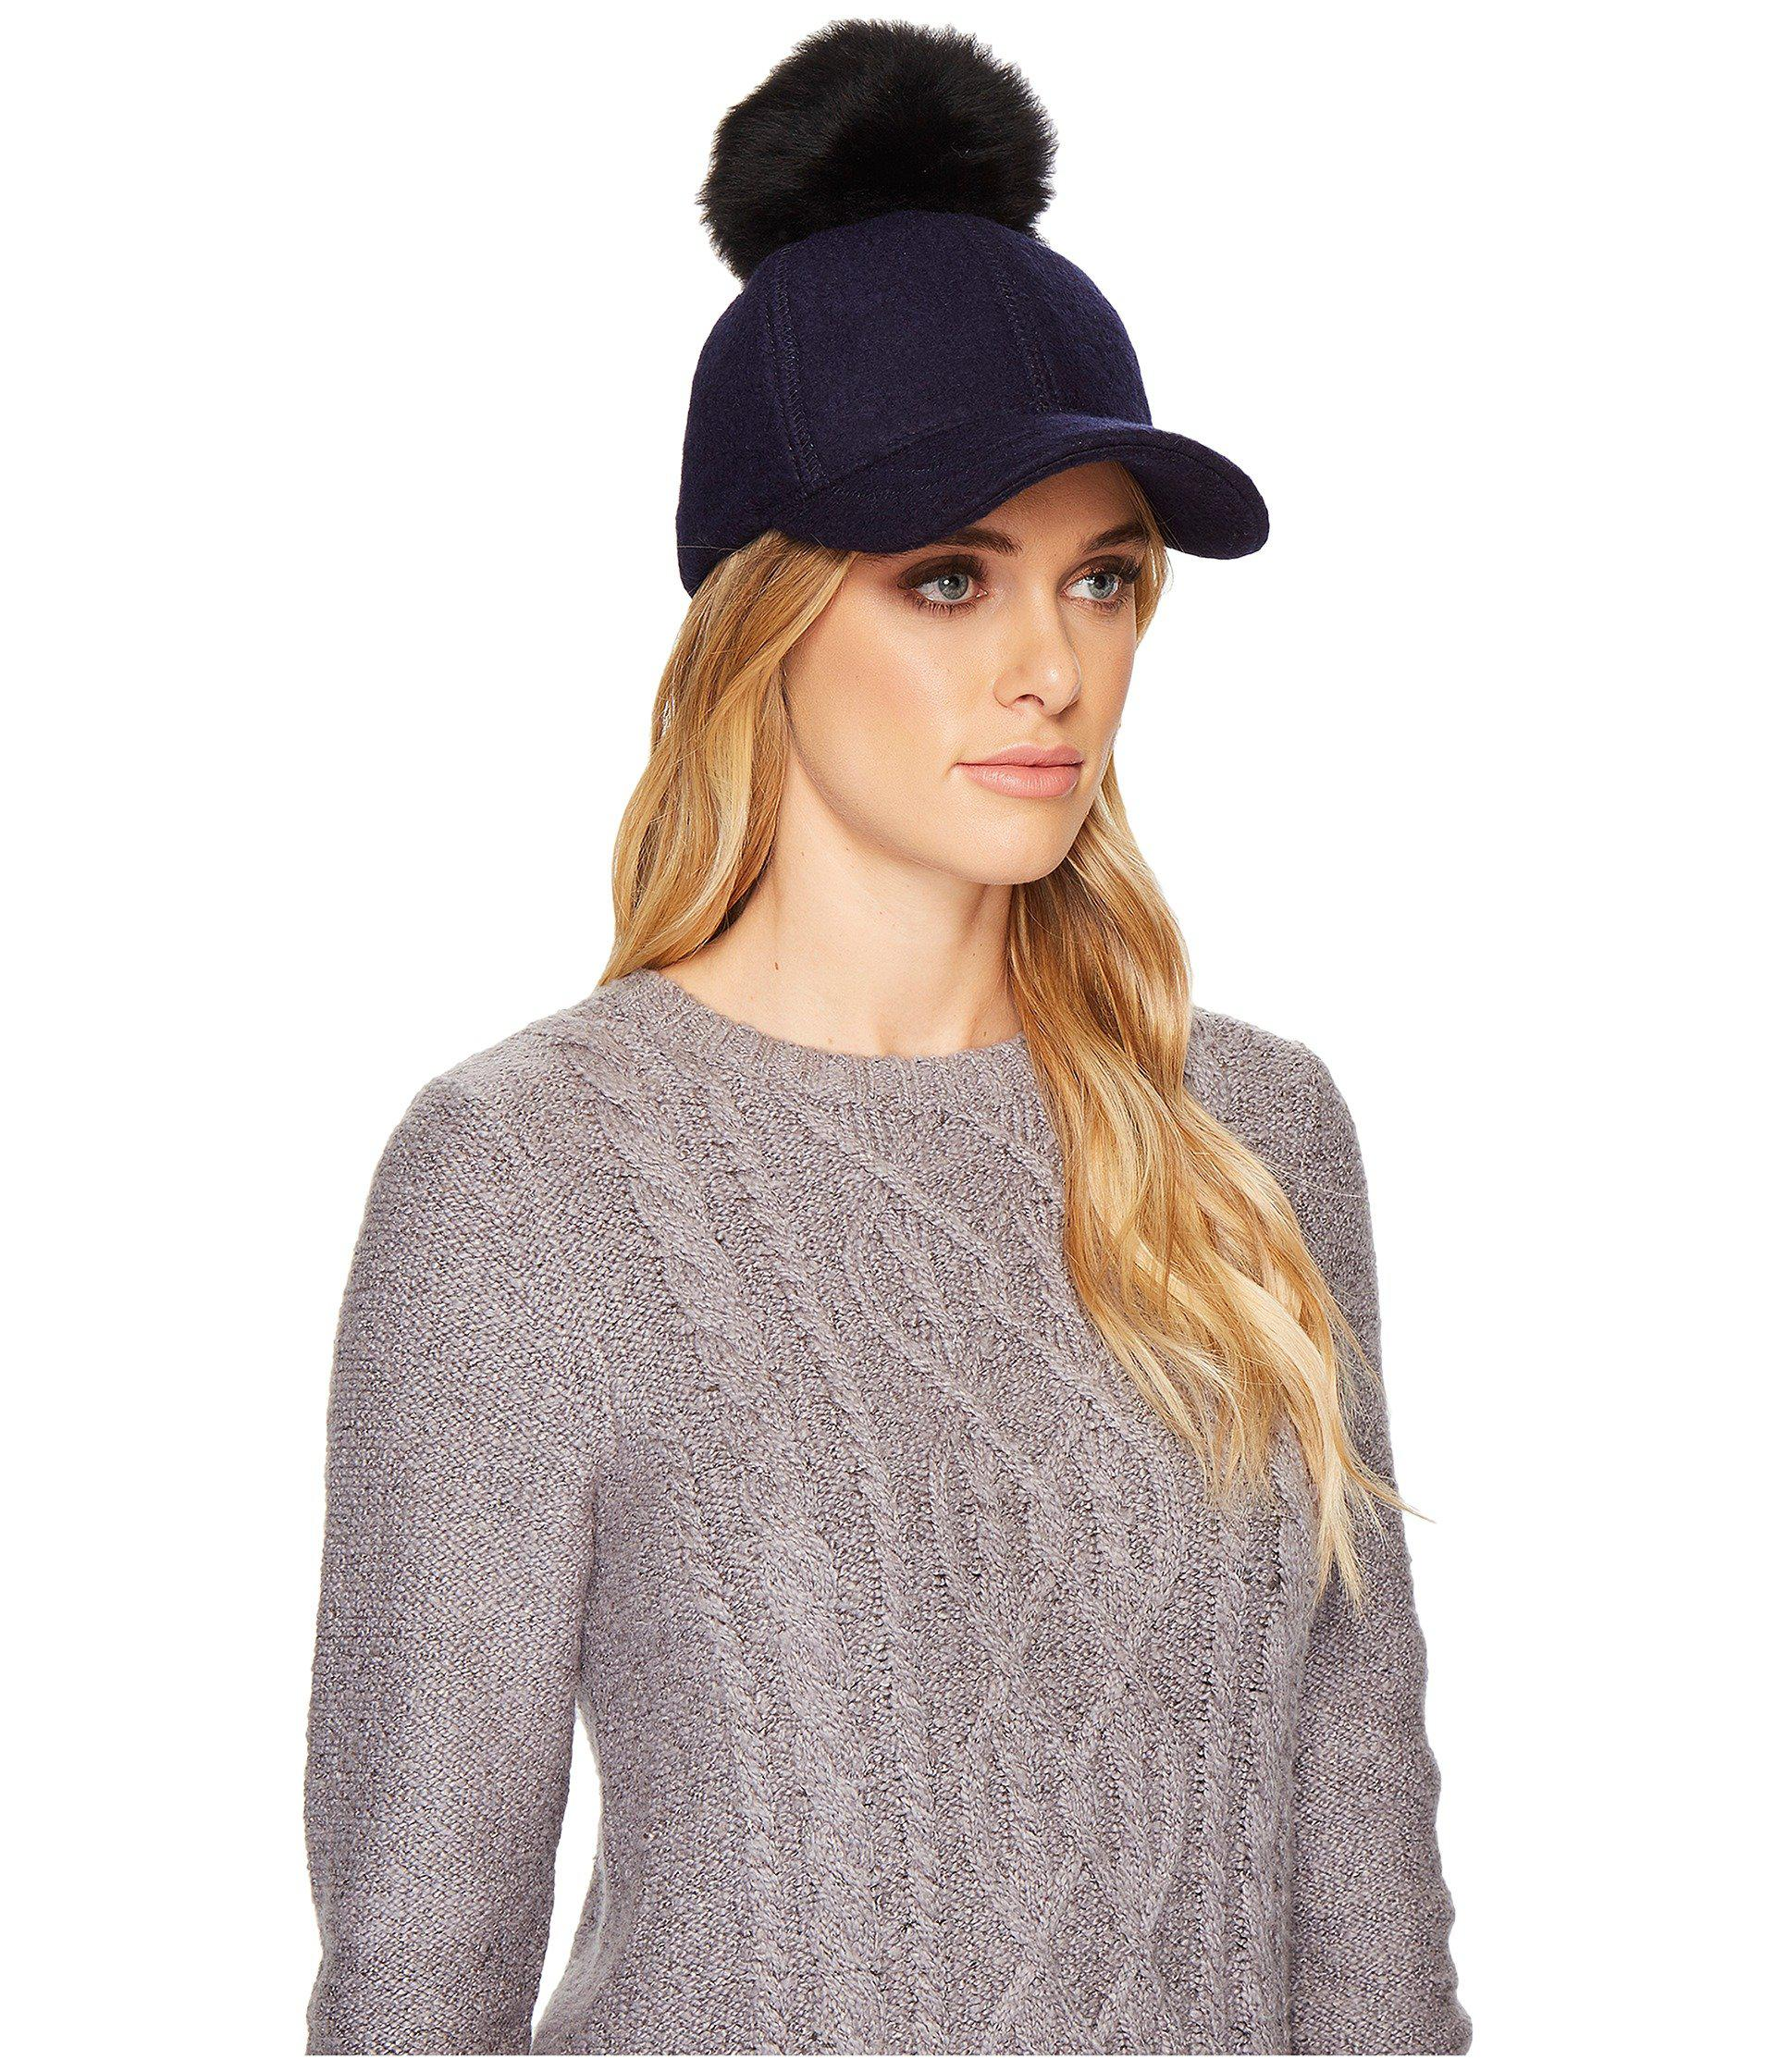 Lyst - Ugg Fabric Baseball Hat With Fur Pom in Blue 2a117286bc03